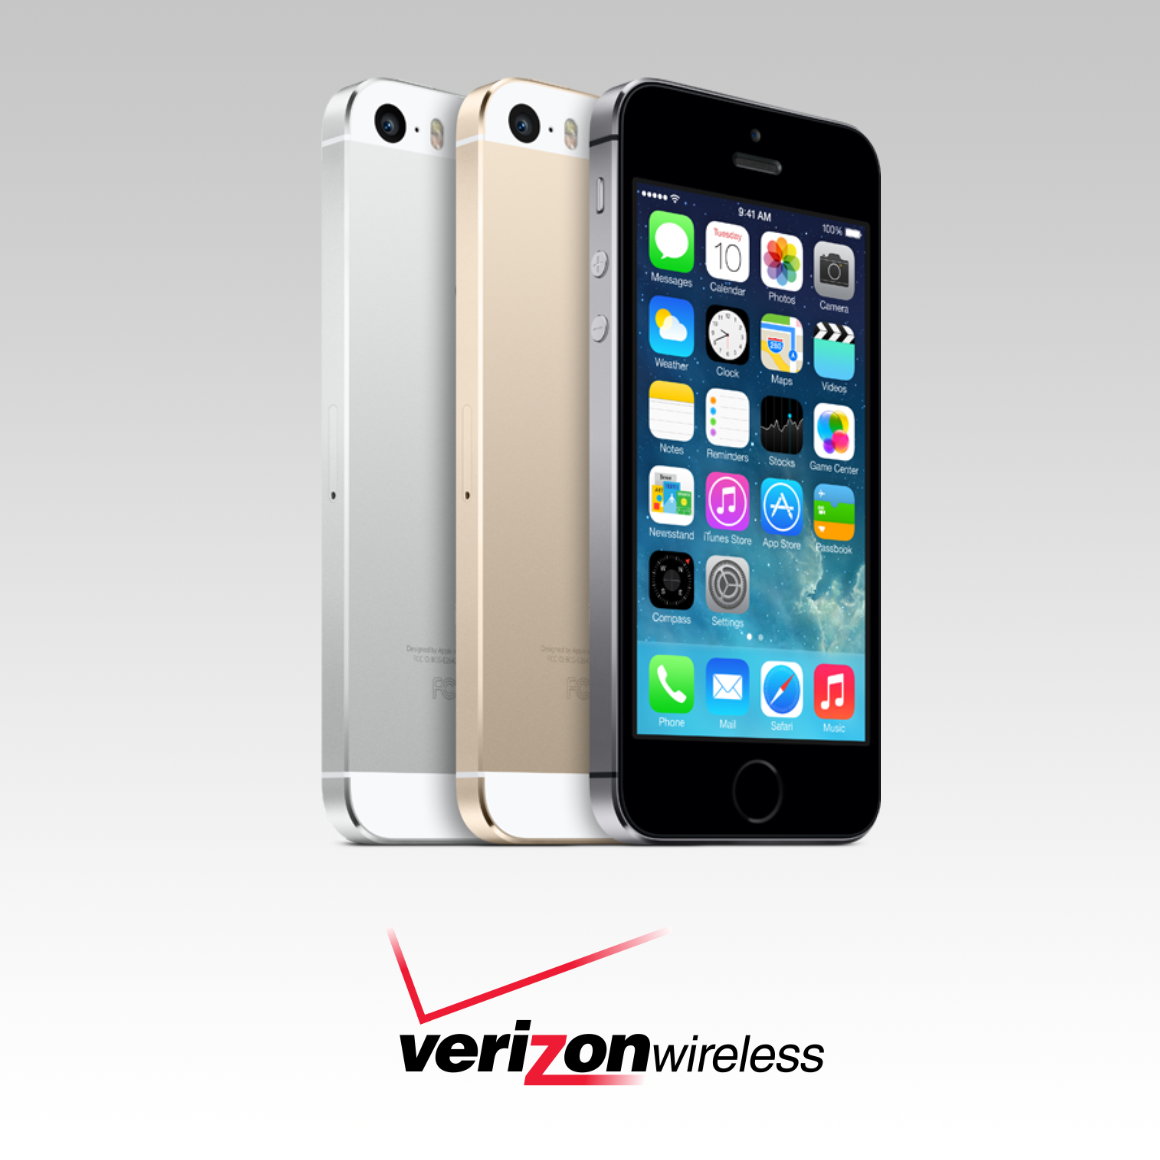 iphone 5s price verizon apple iphone 5s verizon model cdma technak buy 6393